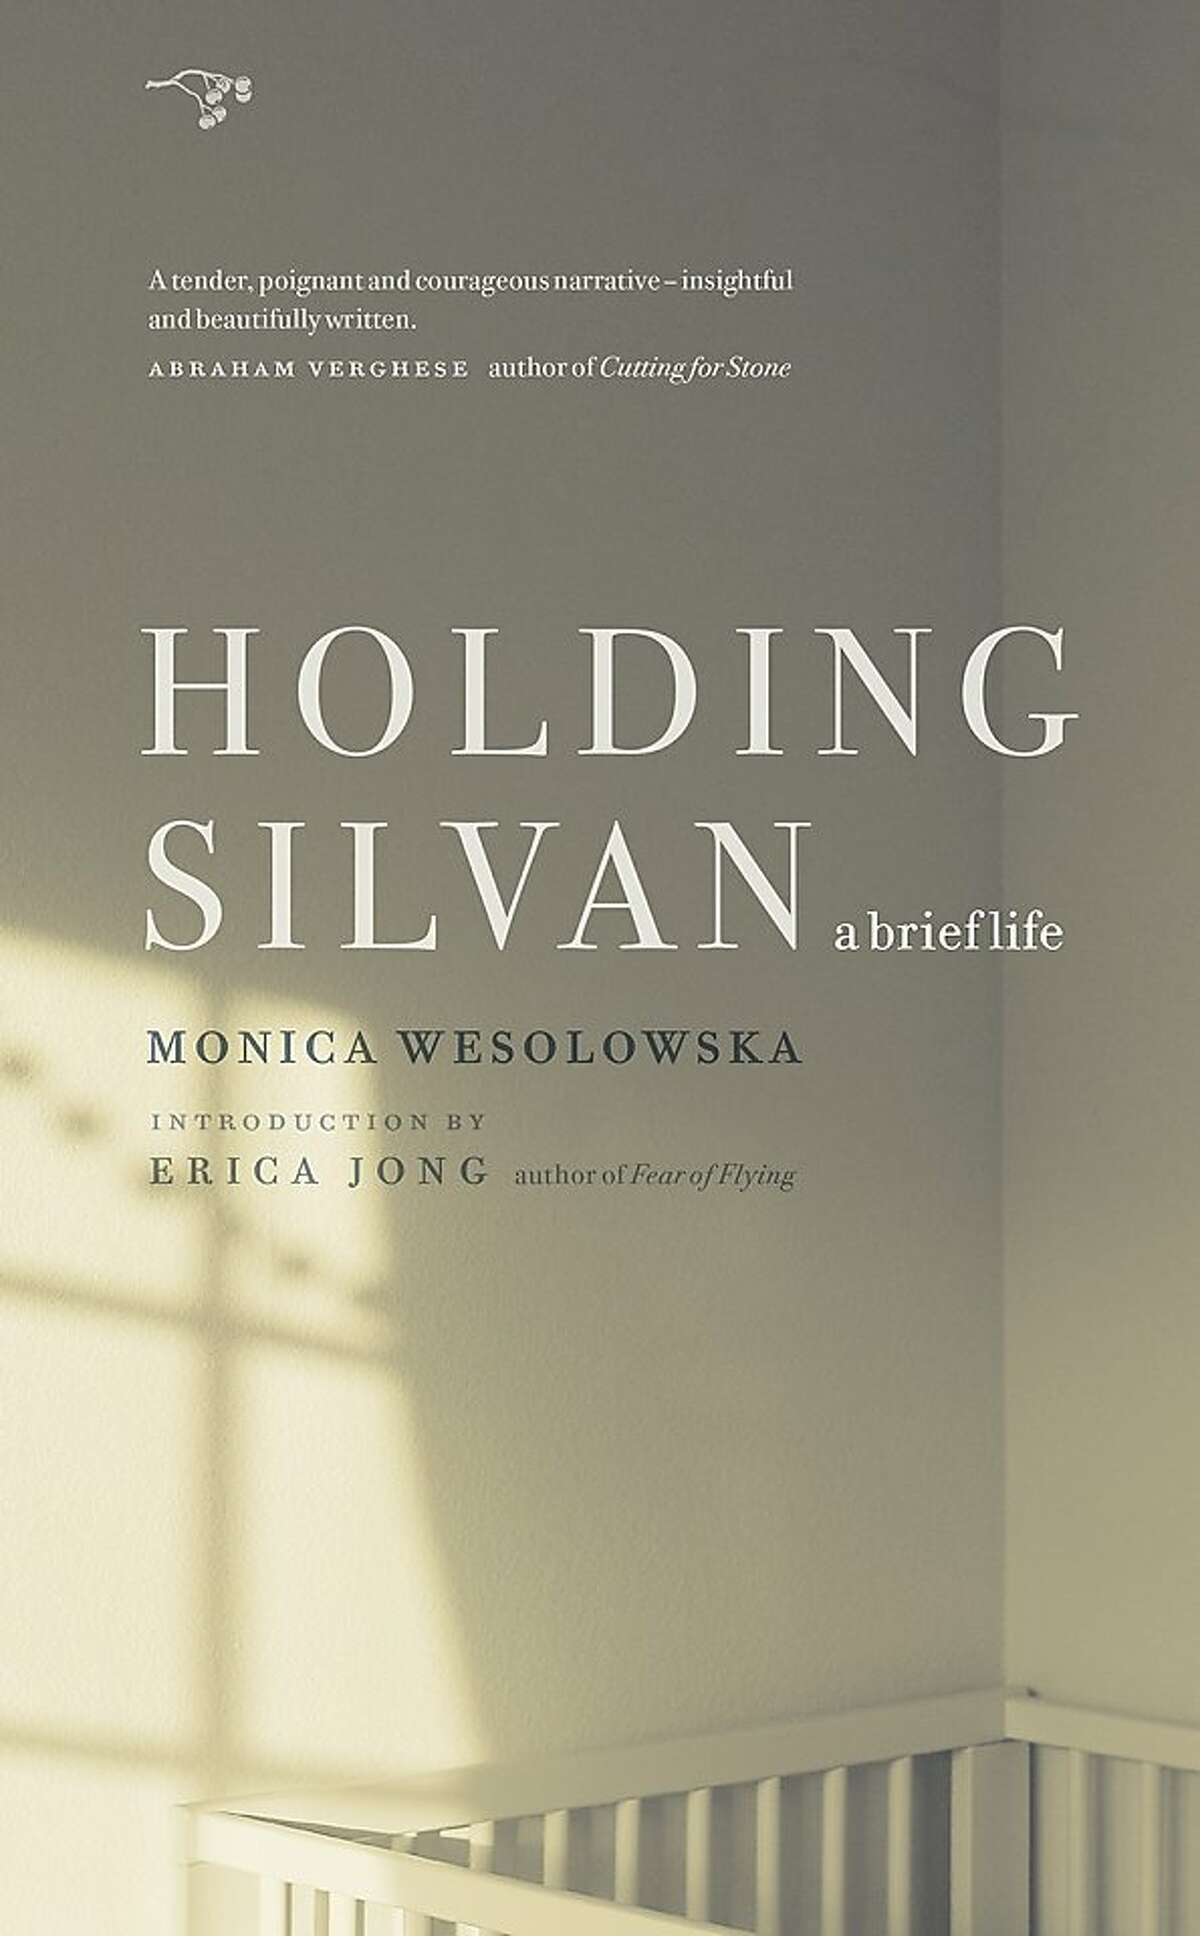 Holding Silvan: A Brief Life, by Monica Wesolowska